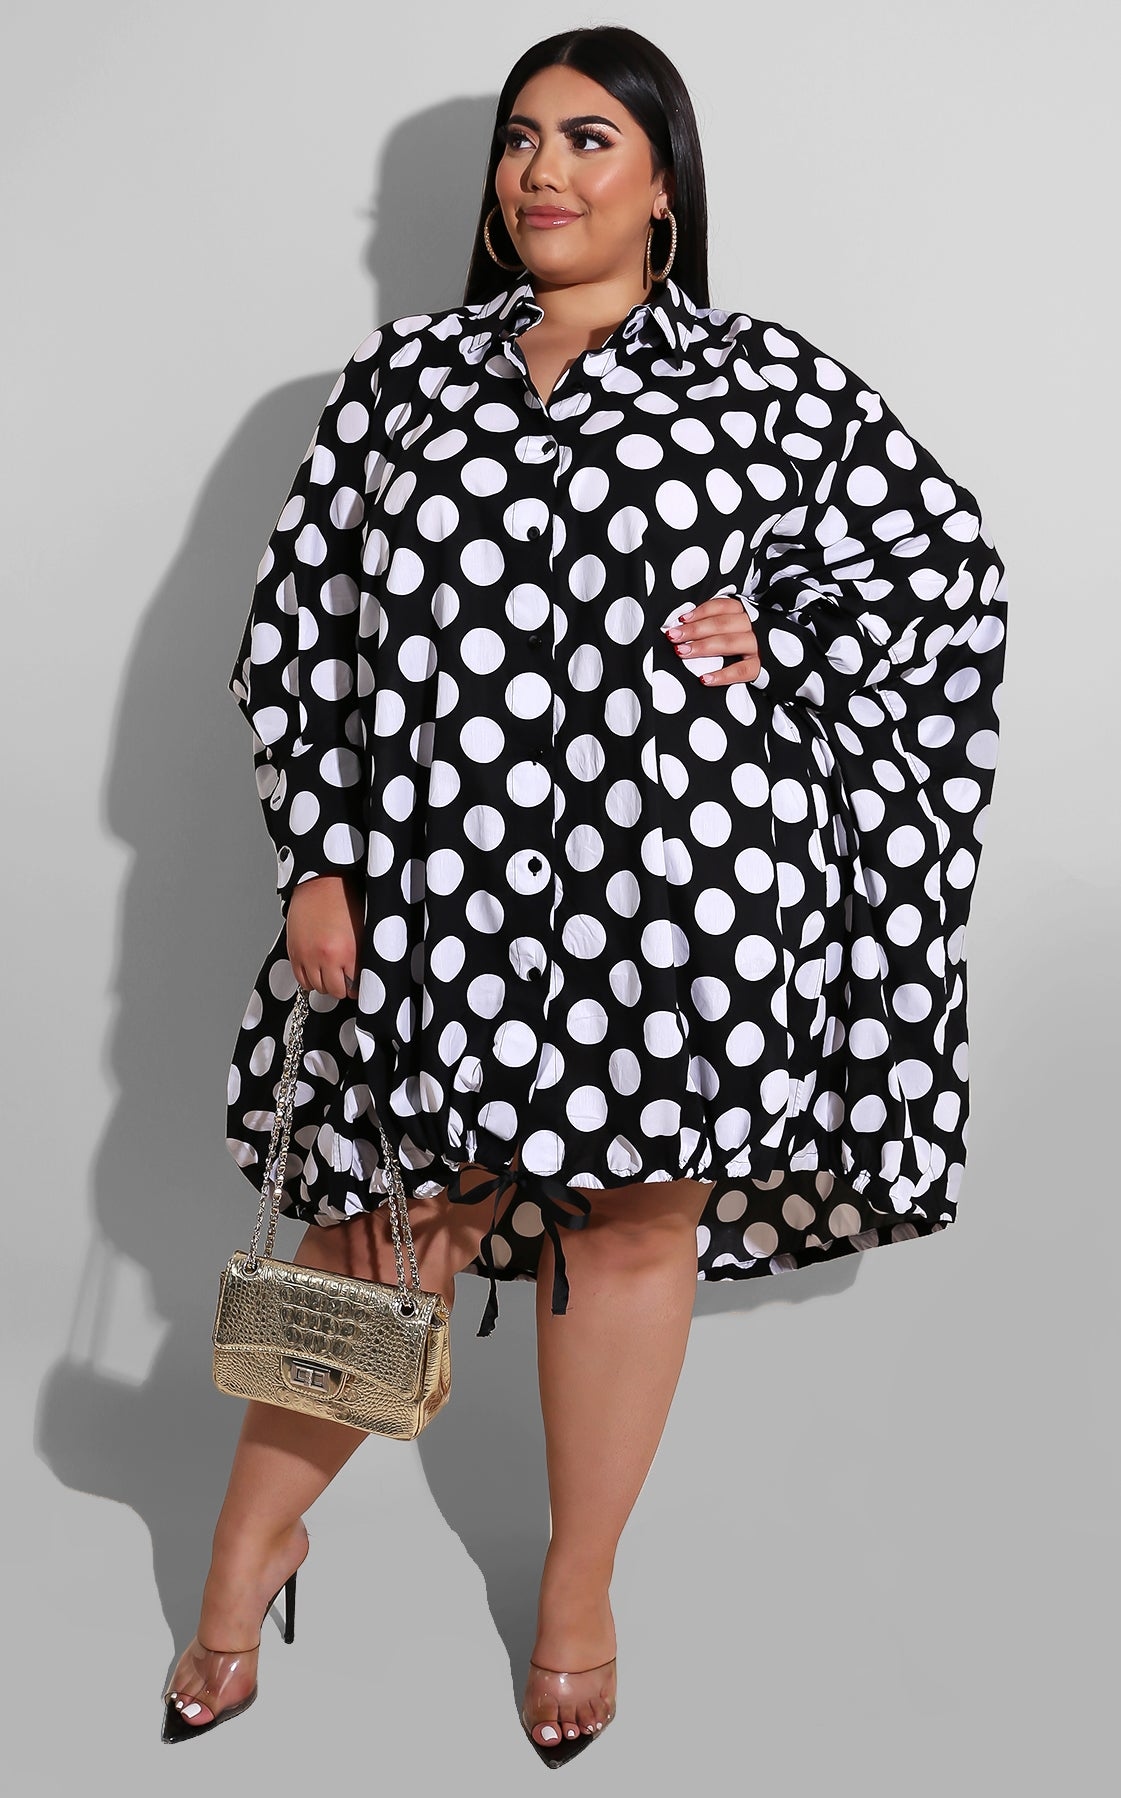 Curvy Sweet As Pie Mini Black White Polkadot